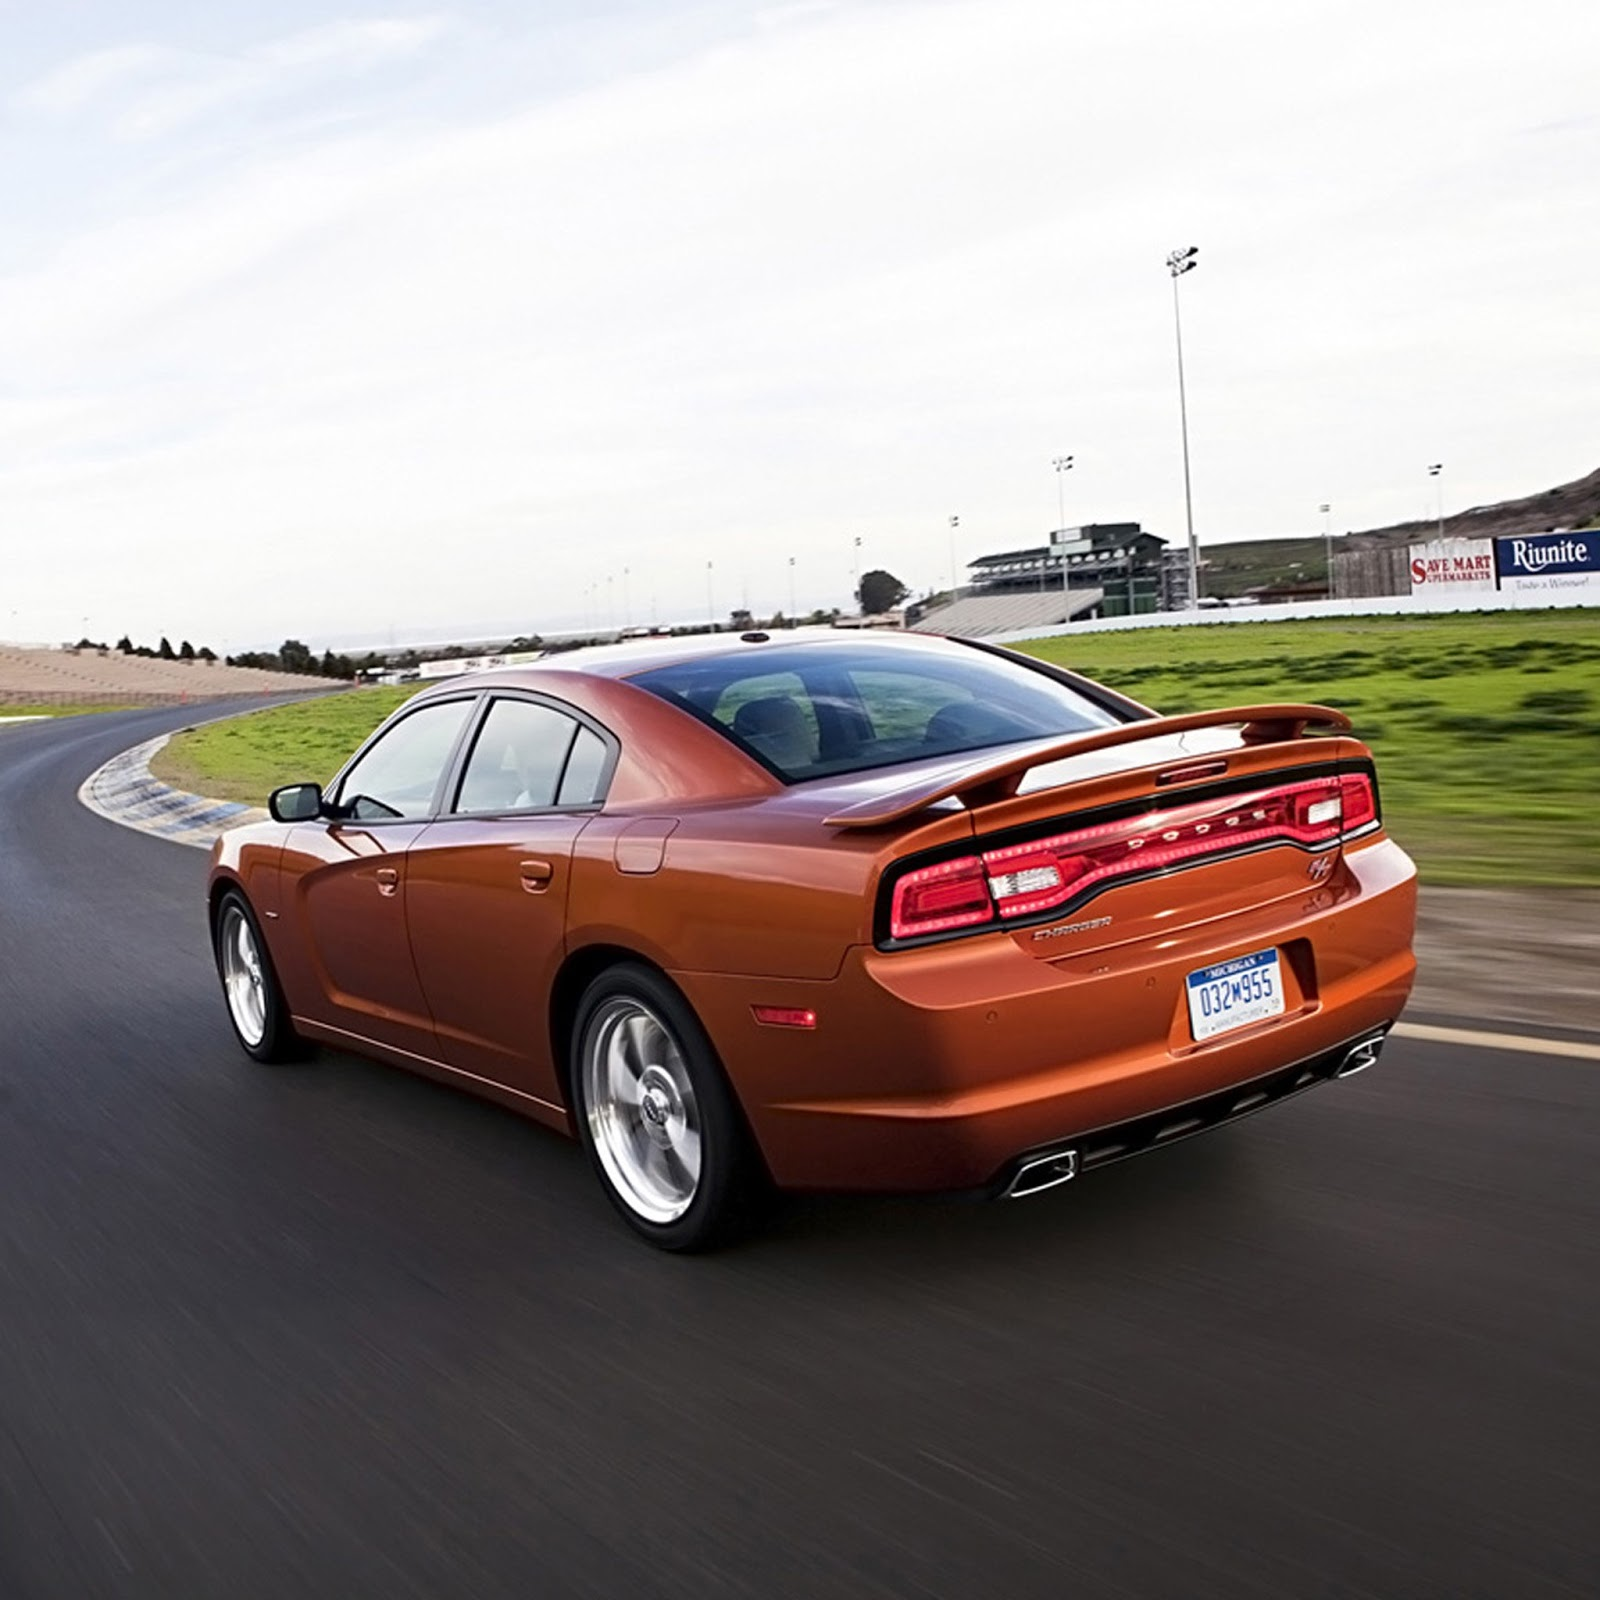 HD Wallpapers: 2012 Dodge Charger RT 2 Wallpapers